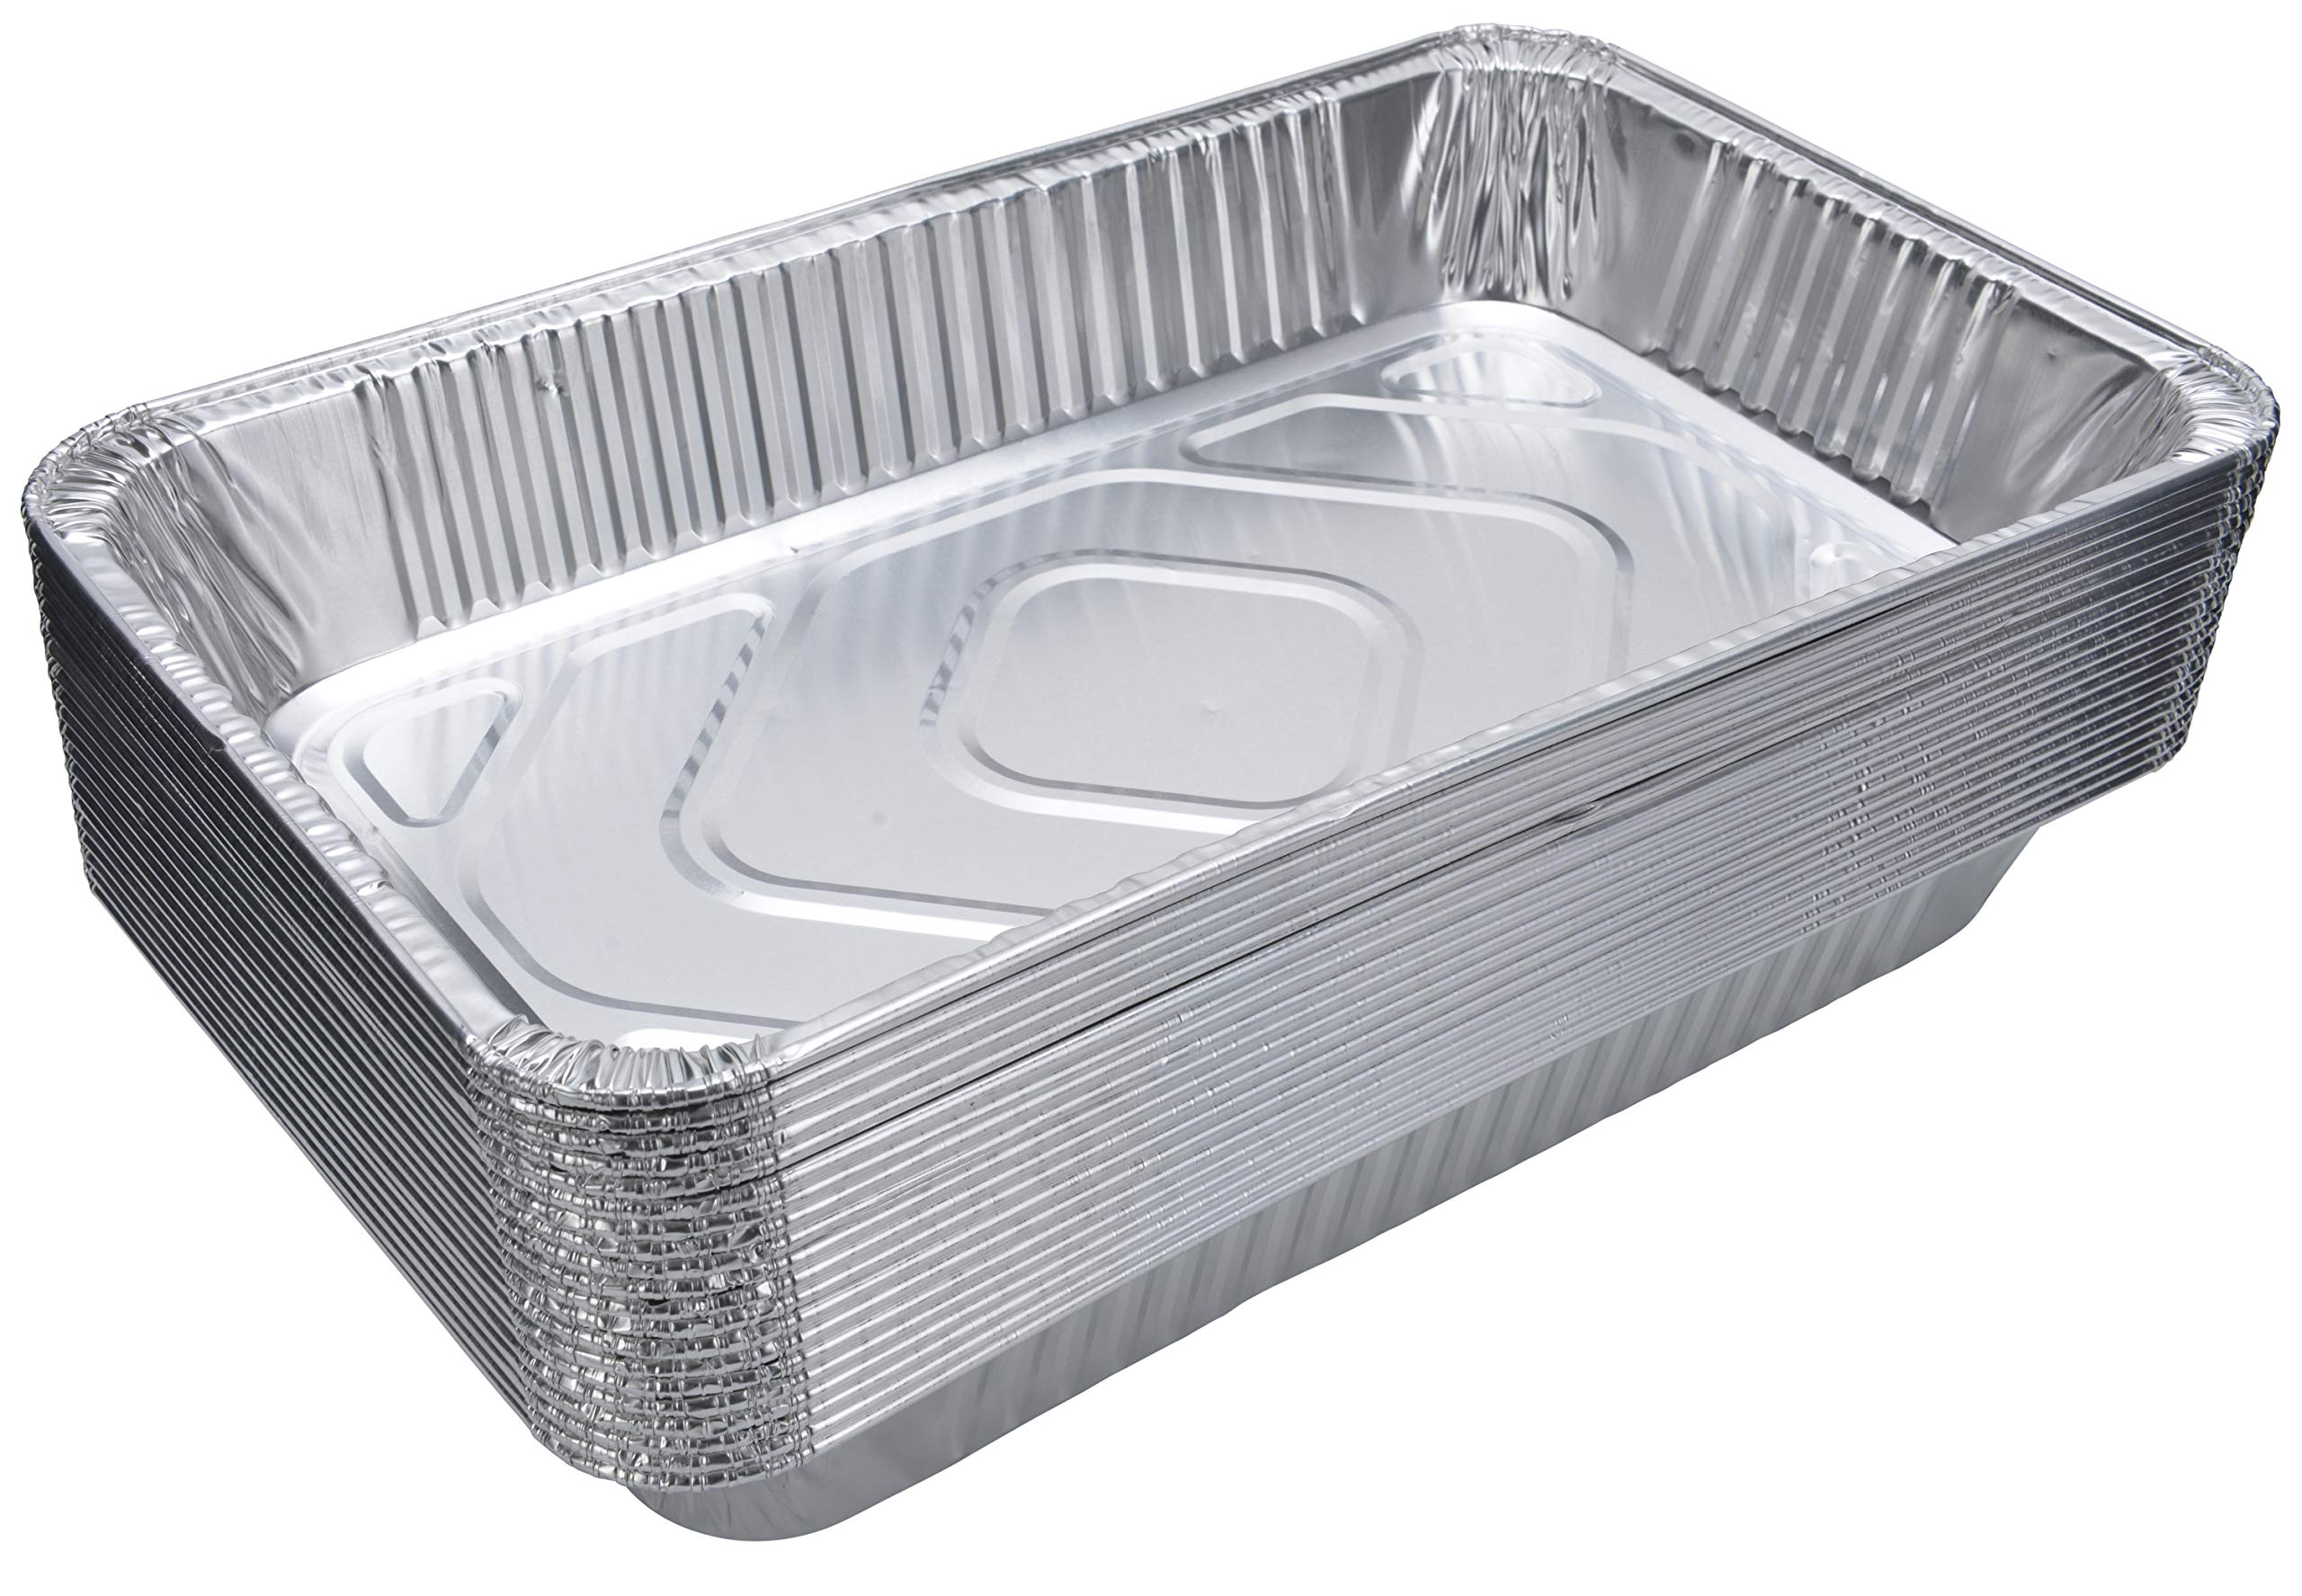 DOBI (15-Pack) Full-Size Deep Chafing Pans - Disposable Aluminum Foil Steam Table Deep Pans, Large Size - 20 1/2'' x 12 1/2'' x 3 1/4''